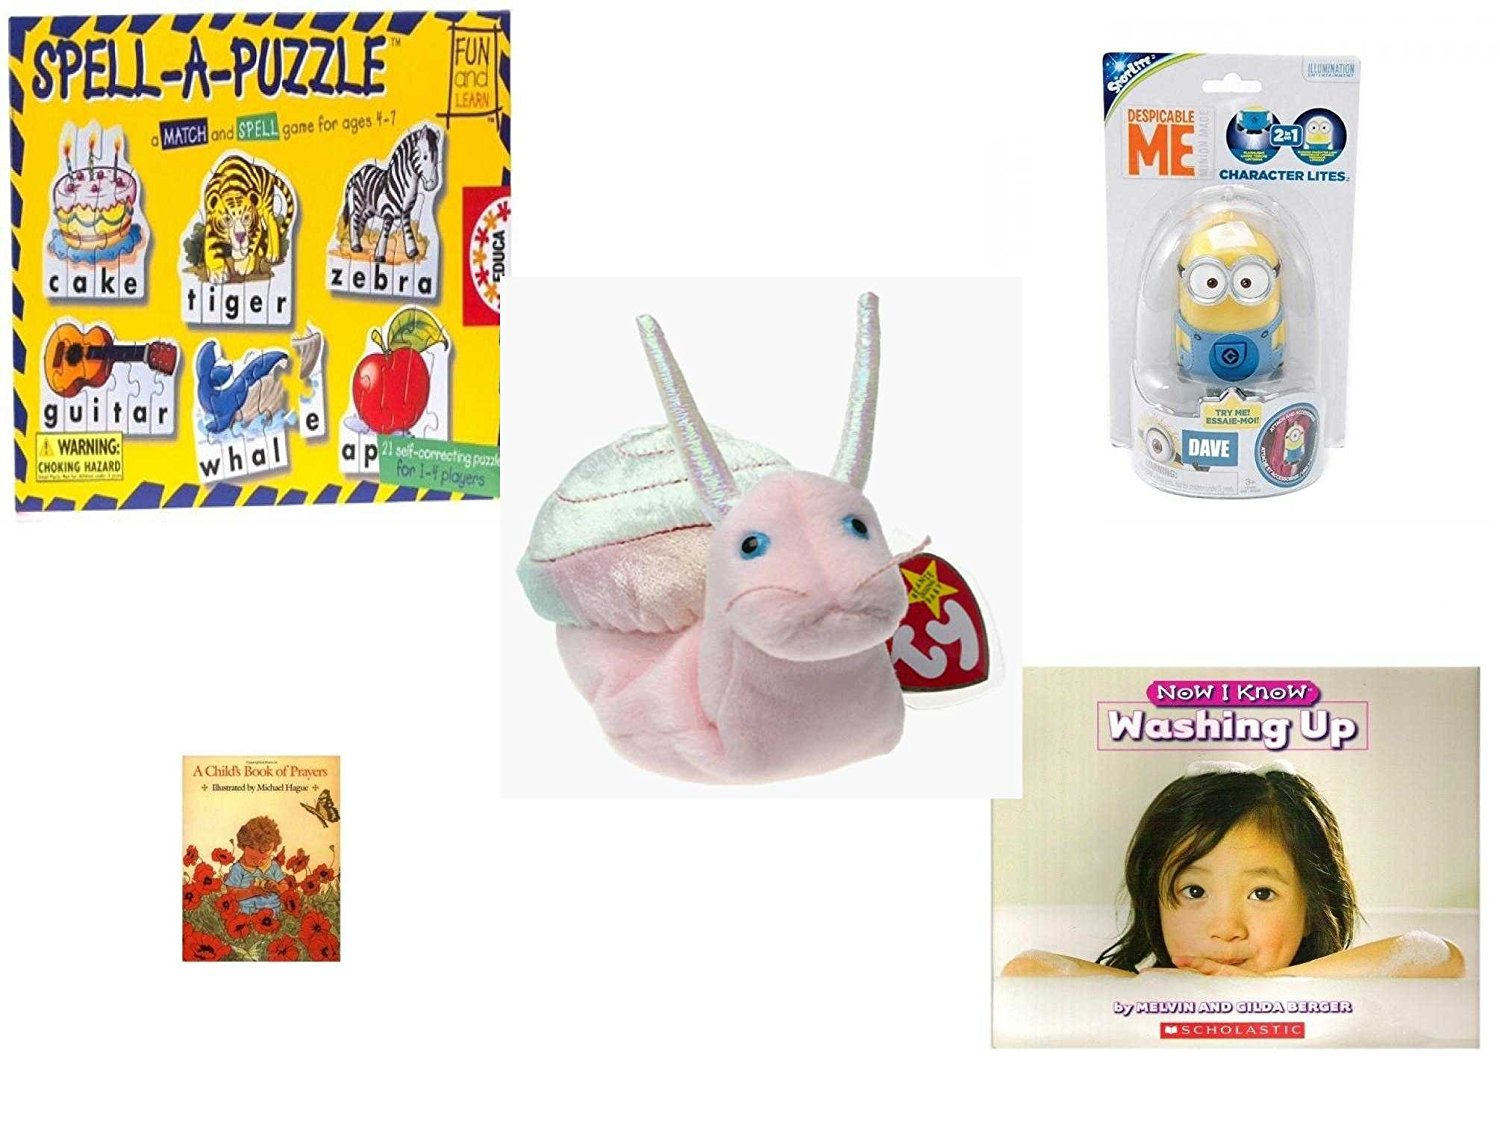 Children's Gift Bundle - Ages 3-5 [5 Piece] - Spell A Puzzle Game - Tech4Kids Despicable Me Character Lite Dave Toy - Ty Beanie Baby - Swirly the Snail - A Child's Book of Prayers Hardcover Book - N